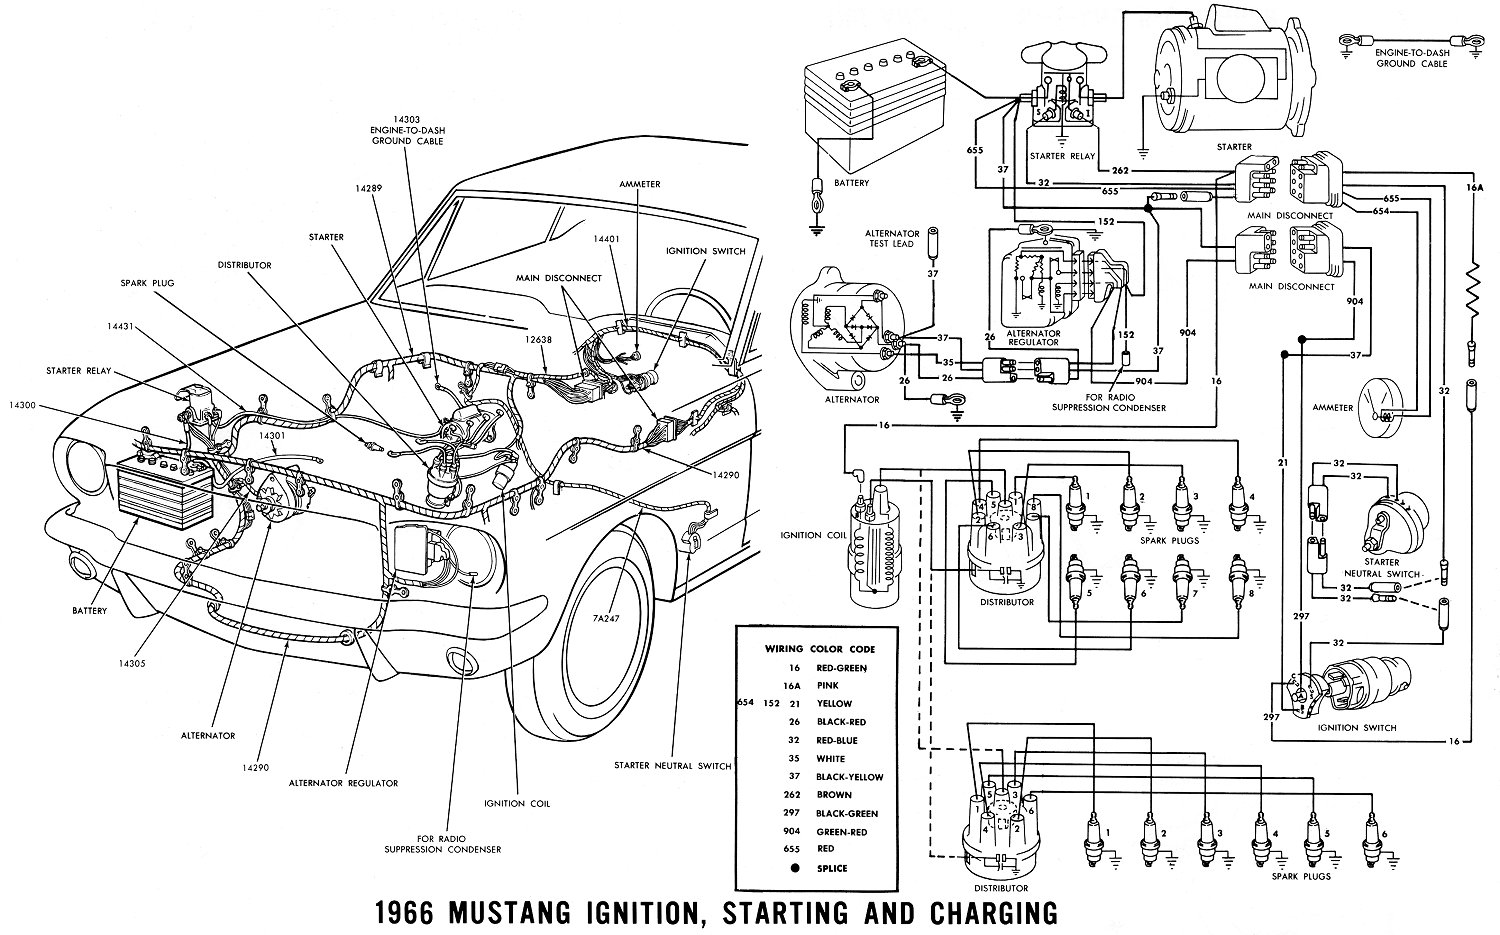 Type6Shuttle Galileo01 together with Super Six Static Stretches further 1966 Mustang Ignition Wiring Diagram furthermore Can Two Circuits Neutrals Be Tied Together Not A Single Neutral Wire But Two furthermore 6xjve Craftsman Lawn Tractor Model 917 28924 Mower Makes Grinding. on ground and neutral